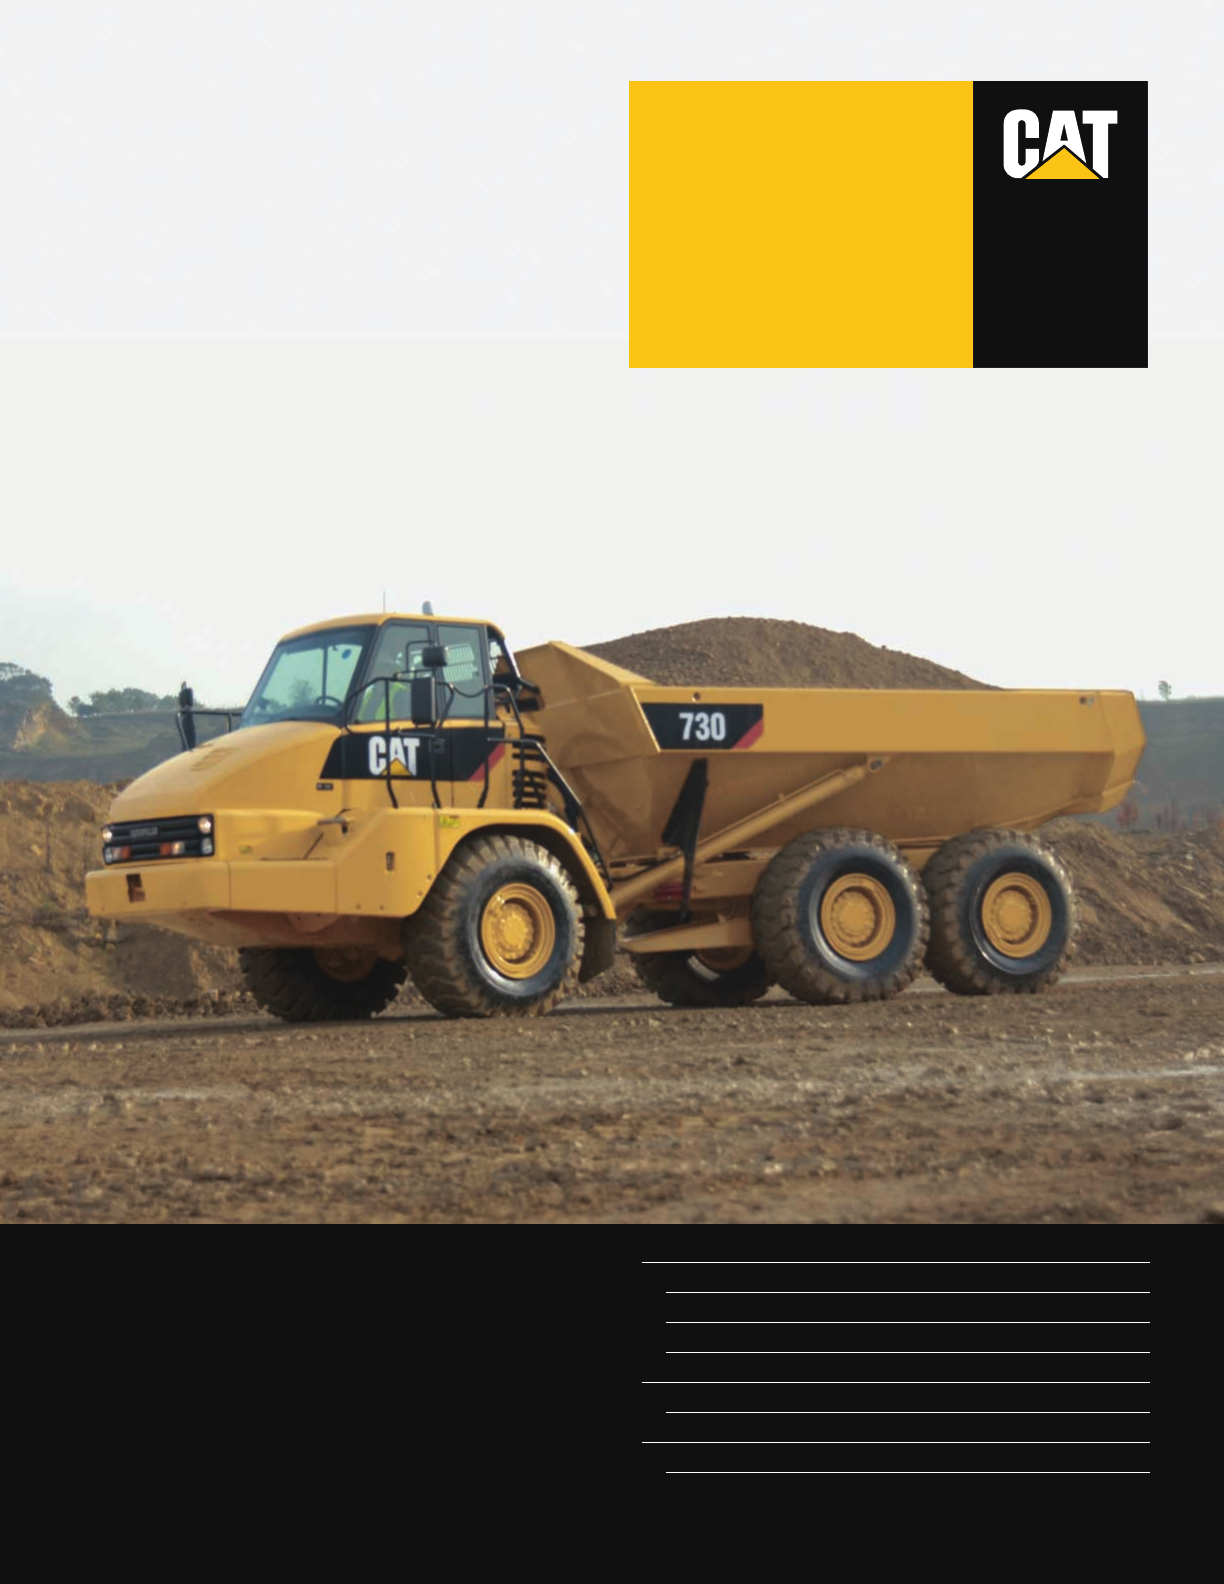 Cat 730 Users Manual Specalog For Articulated Truck Aehq5647 03